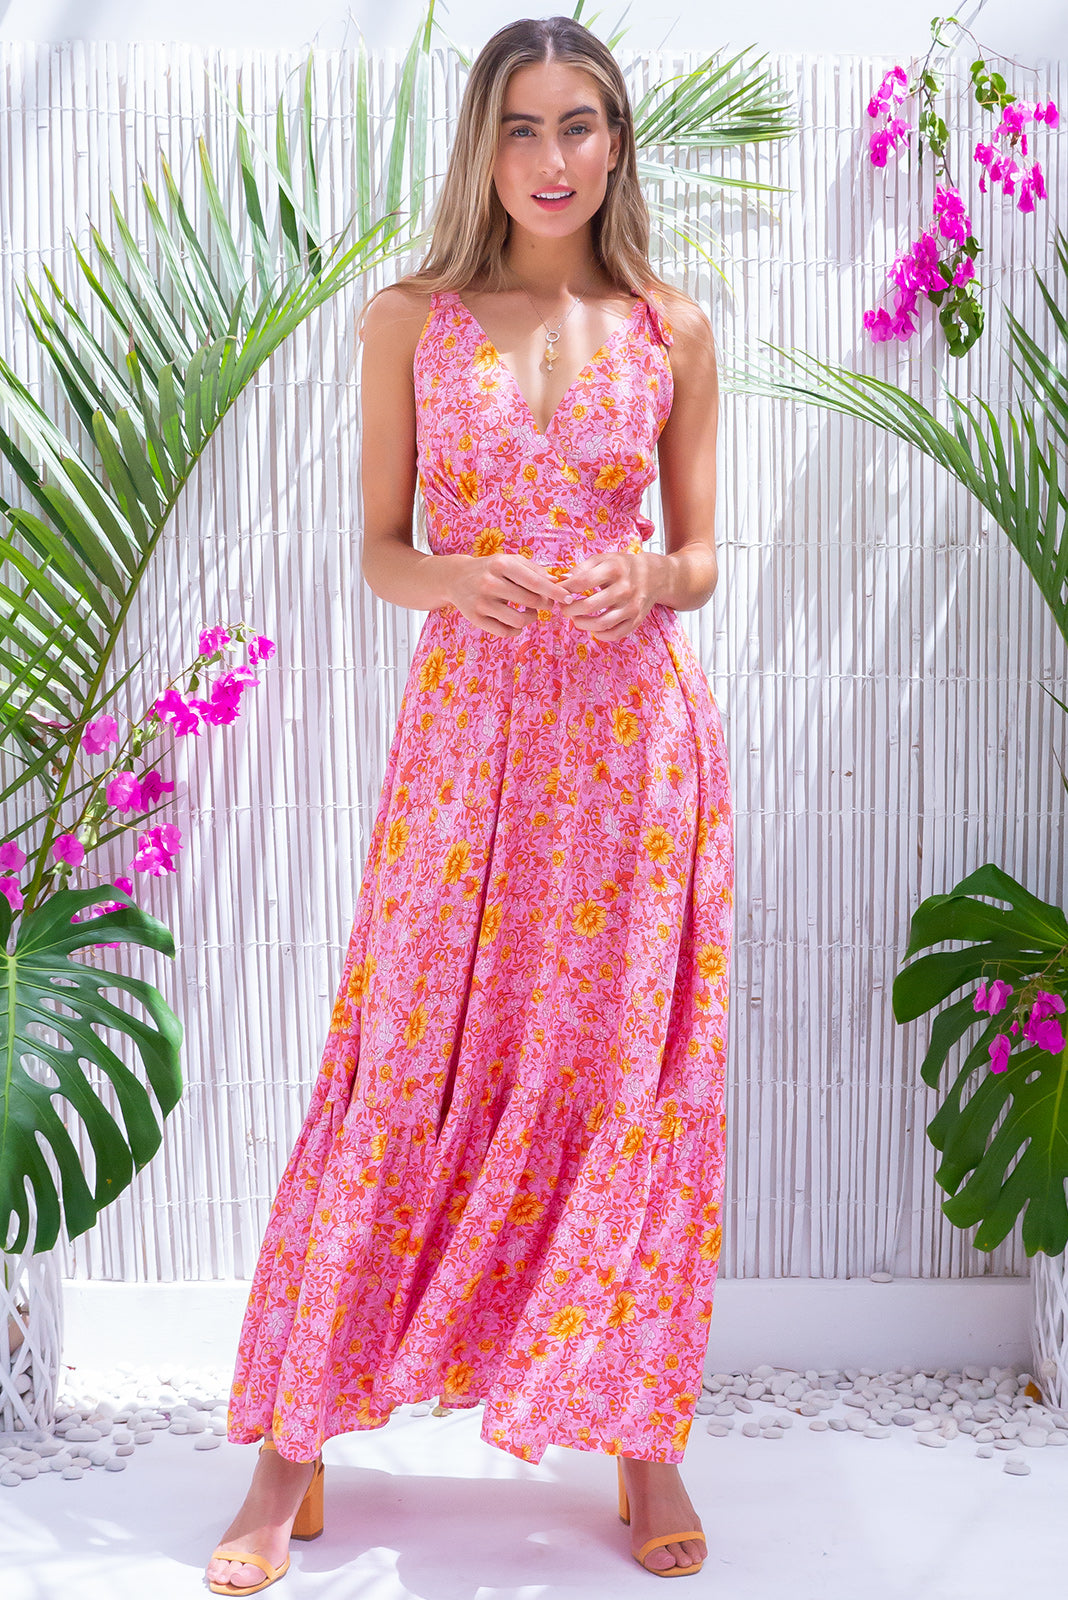 Luana Emma Pink Maxi Dress, bohemian summers style, 100% viscose, lightweight fabric, adjustable shoulder ties, shirred elasticated back, flattering front basque waist, side pockets, warm pink base with medium orange and peach floral print.